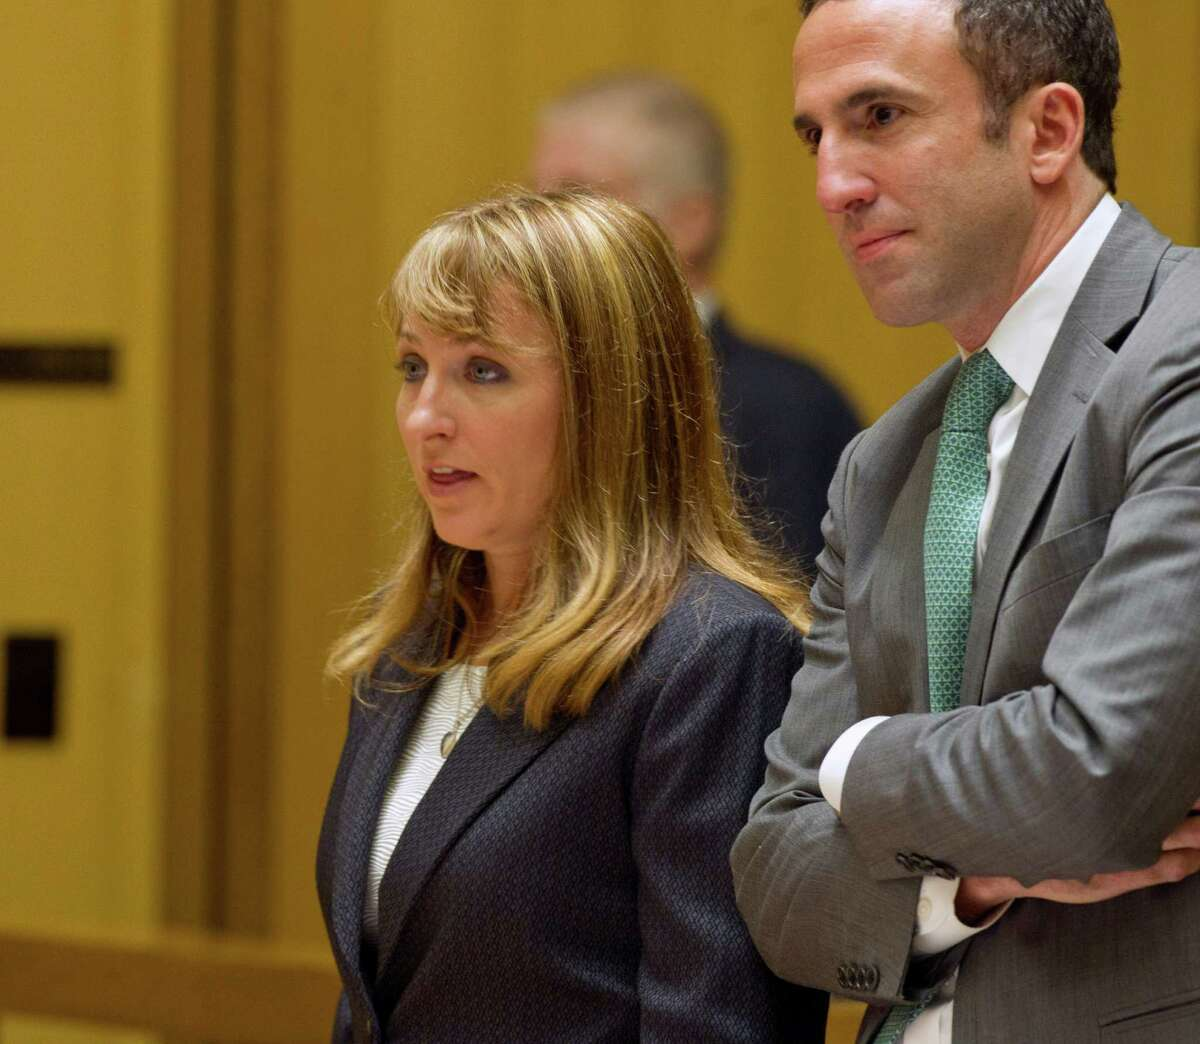 Former animal shelter Director Laurie Hollywood appears in State Superior Court with her lawyer, Mark Sherman, in Stamford, Conn., on three counts of reckless endangerment on Thursday, July 10, 2014.